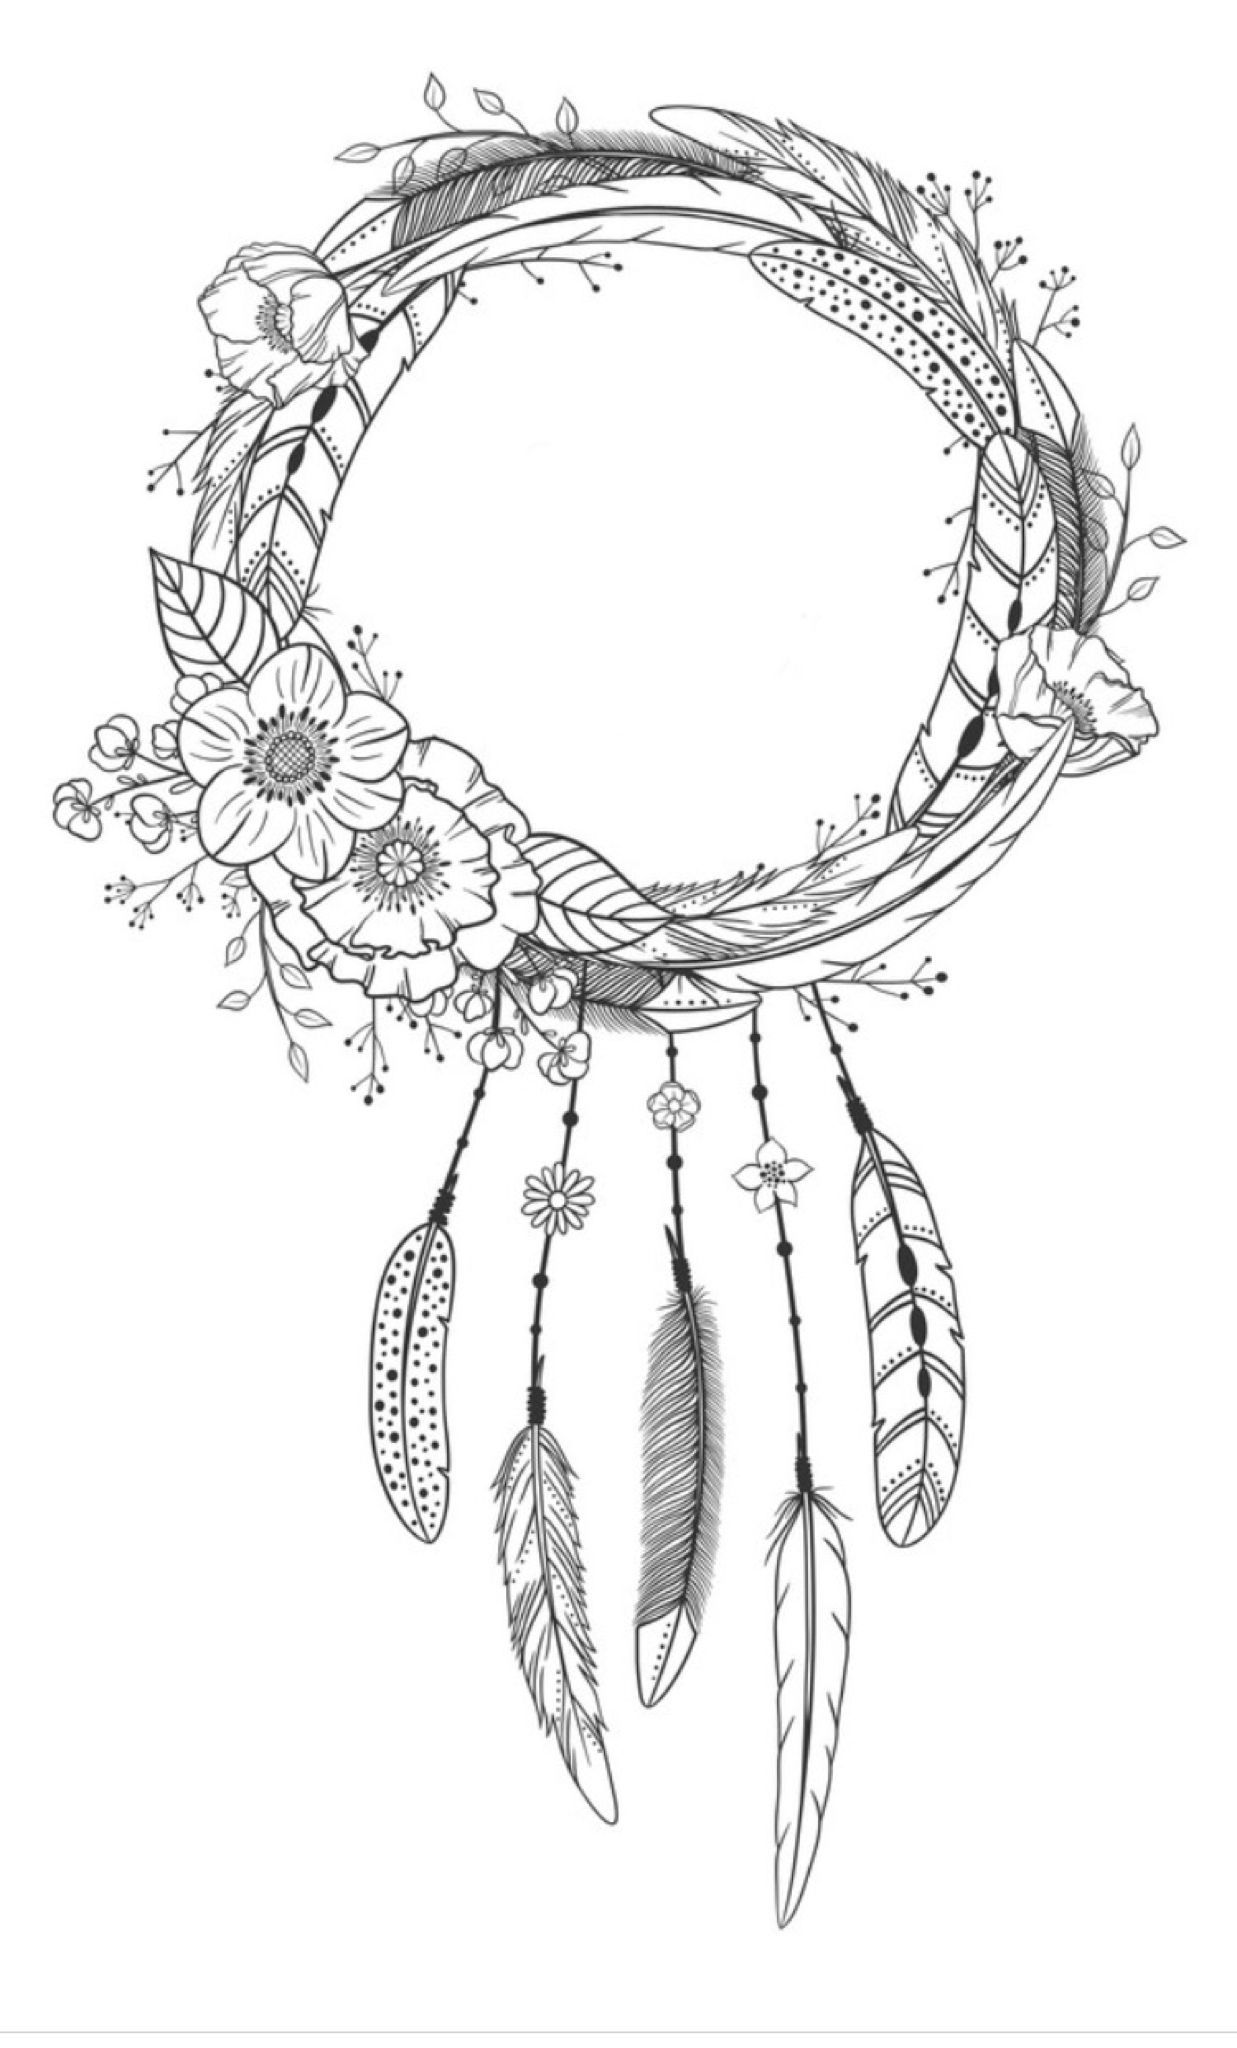 Dreamcatcher Coloring Page Coloring Pages For Adults Dream